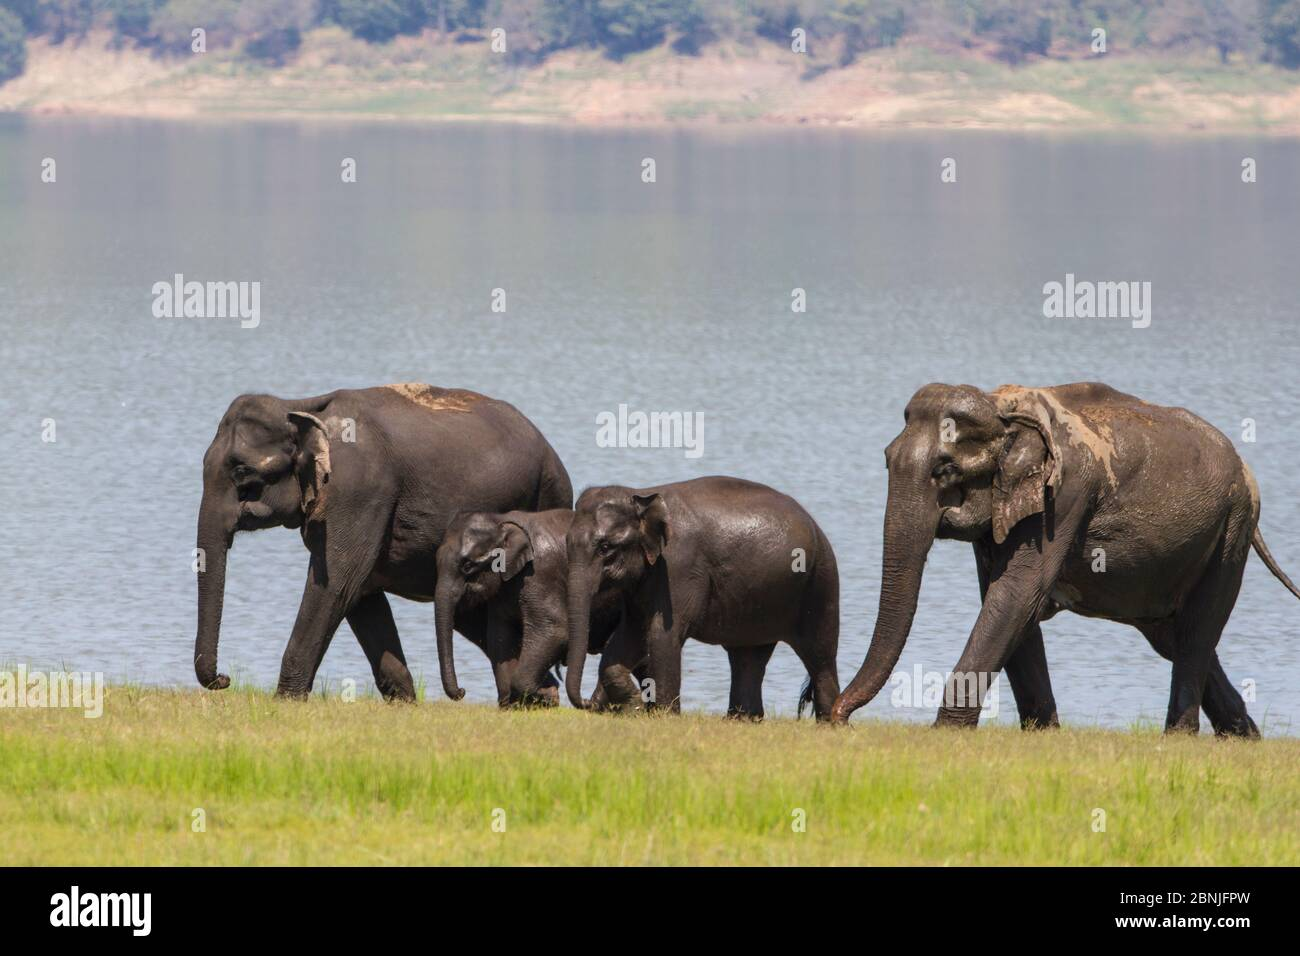 Asiatic elephant (Elephas maximus), family coming out of lake after drinking and bathing. Jim Corbett National Park, India. Stock Photo